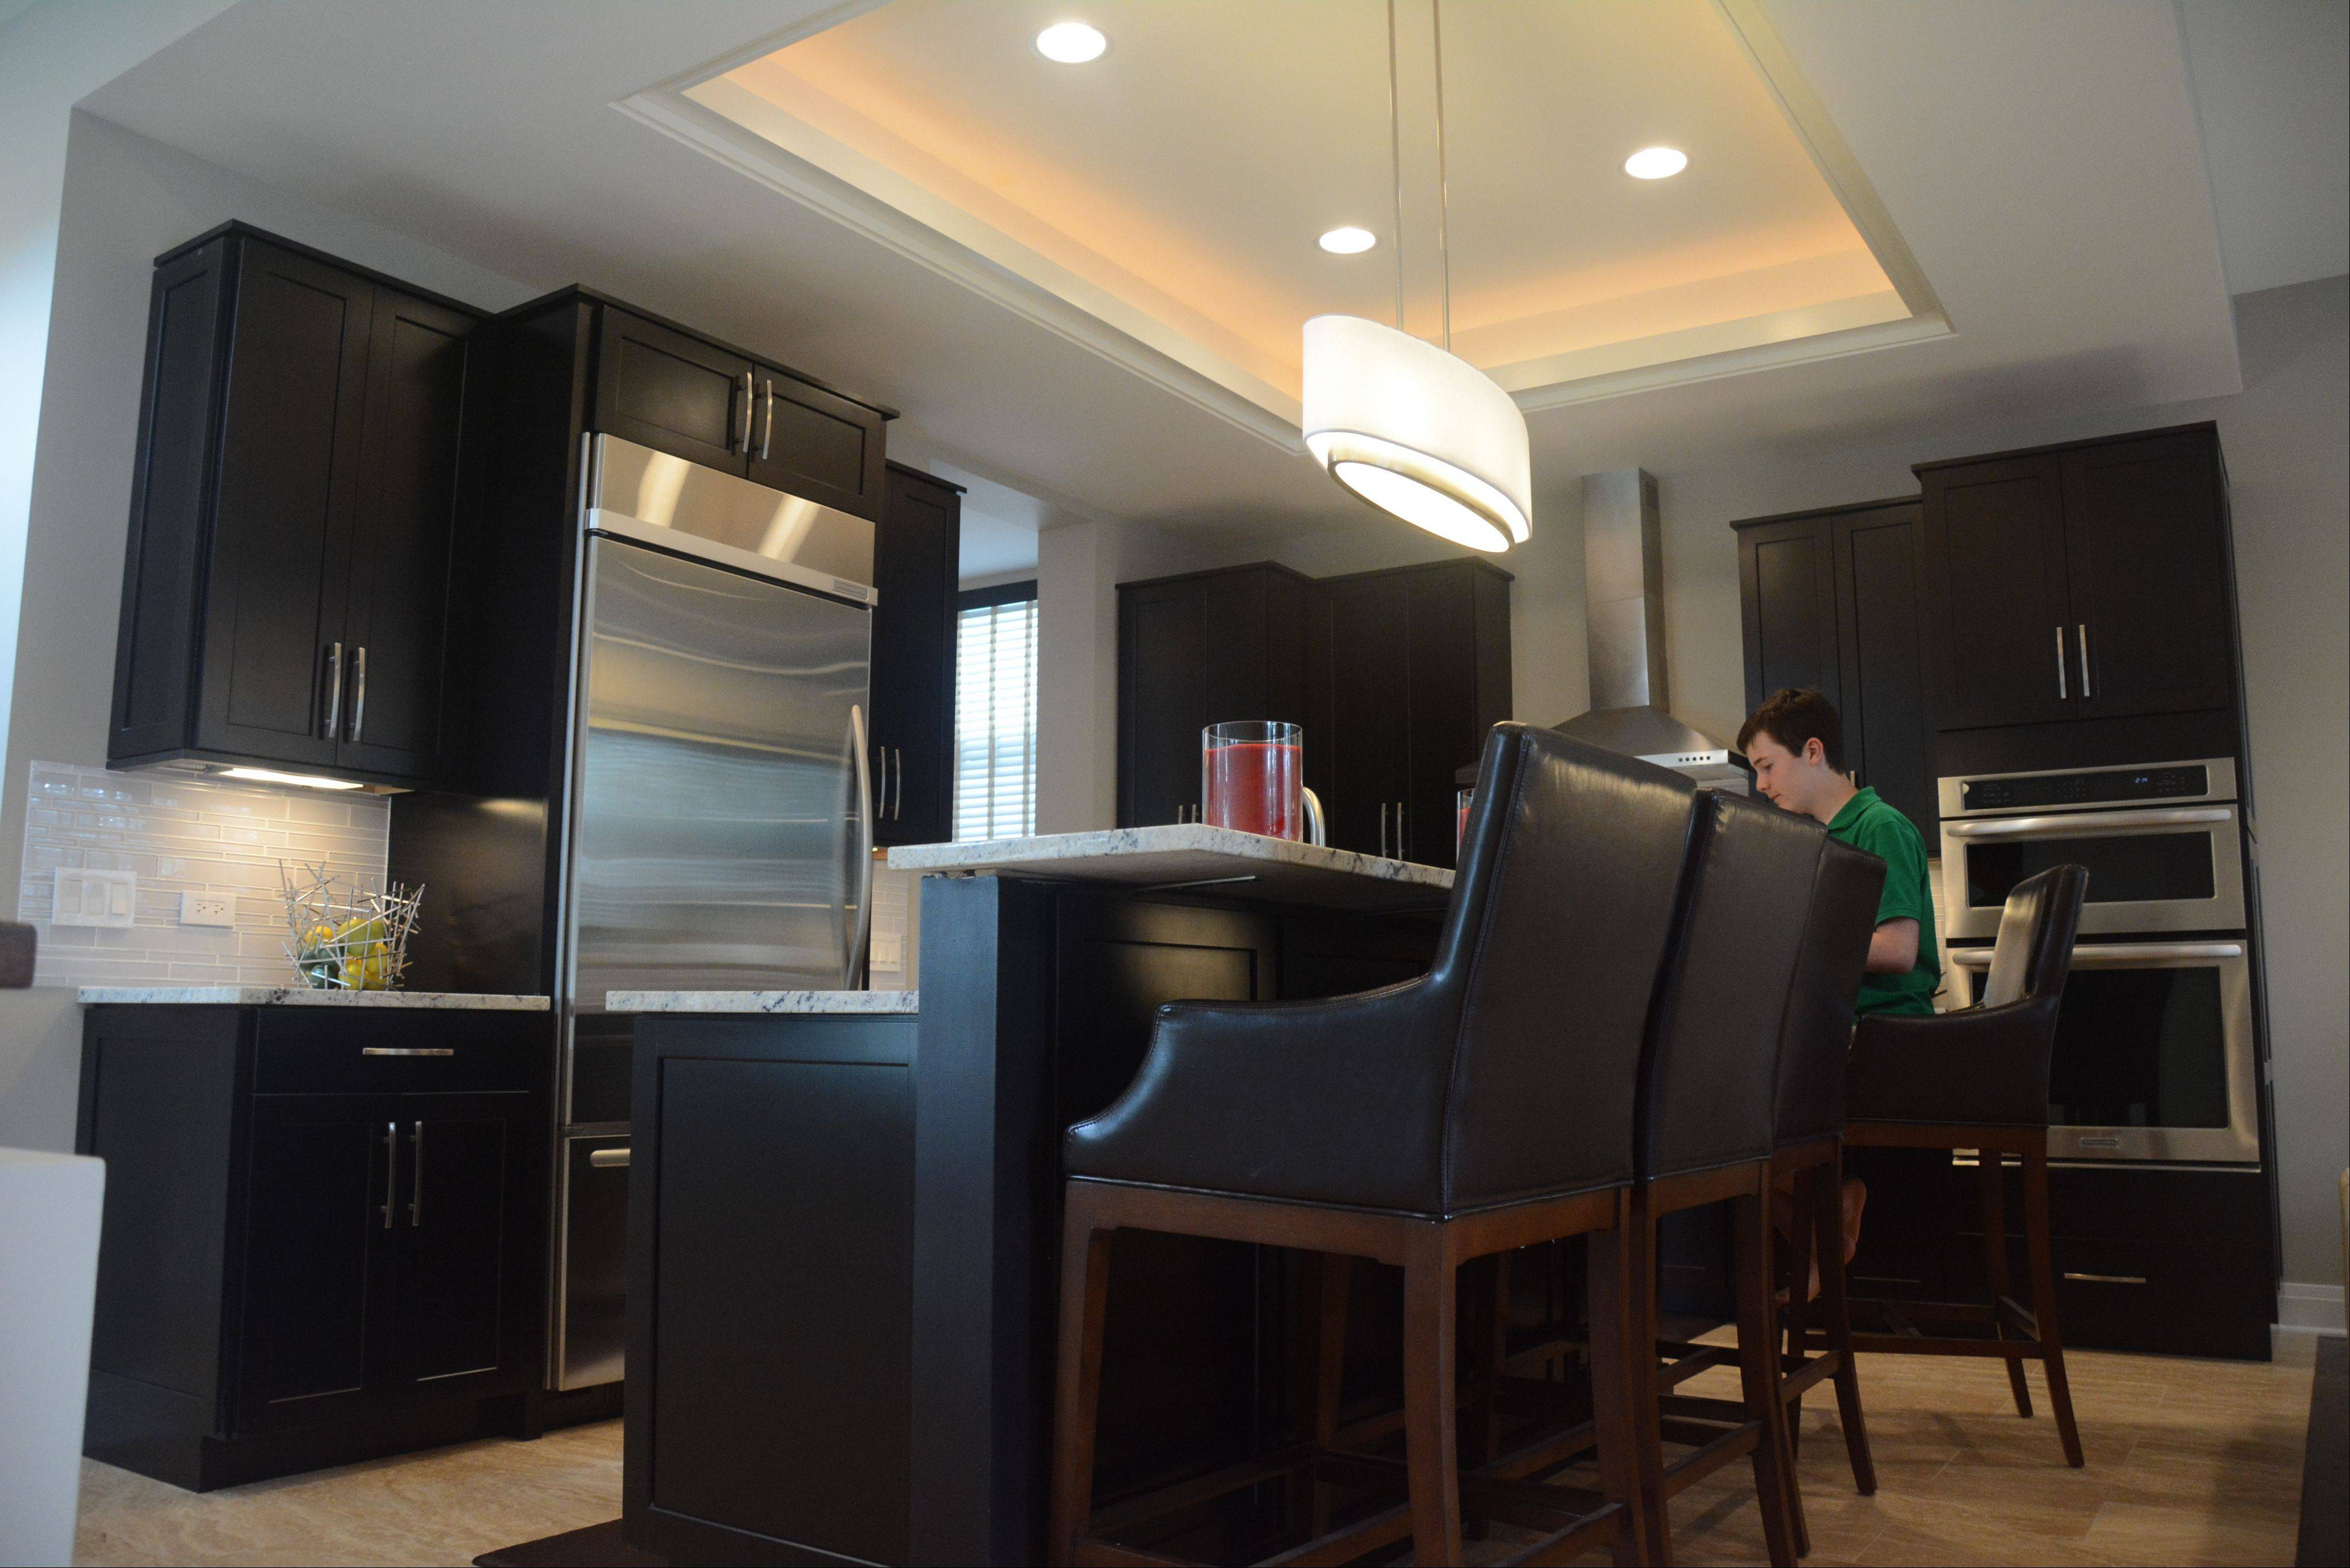 Austin Turner sits at the kitchen island near the espresso-colored cabinets his mother selected.